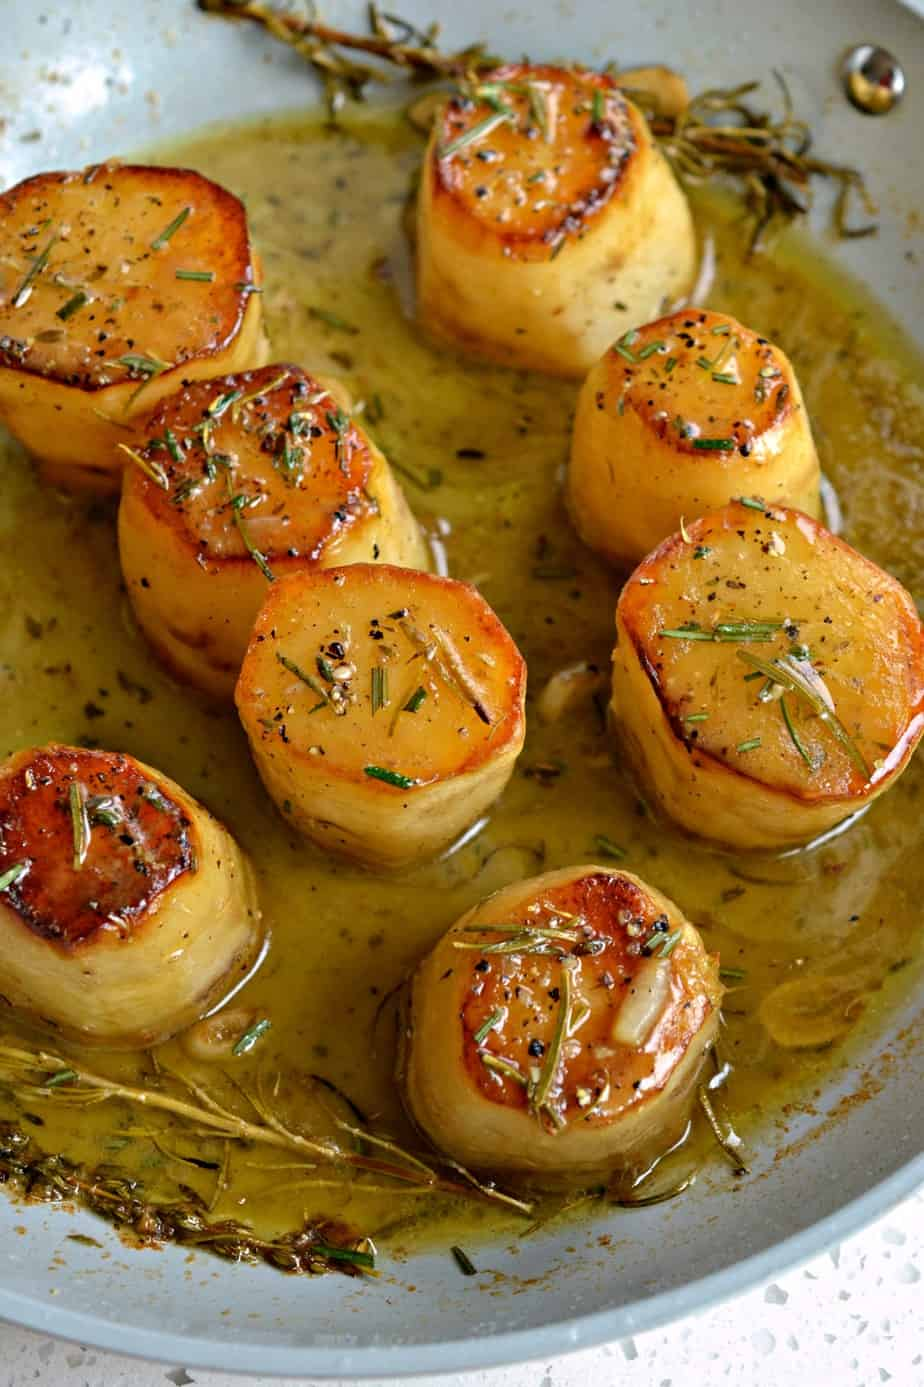 Elegant Fondant Potatoes are browned and then baked in creamy butter and rich chicken stock with aromatic fresh herbs.